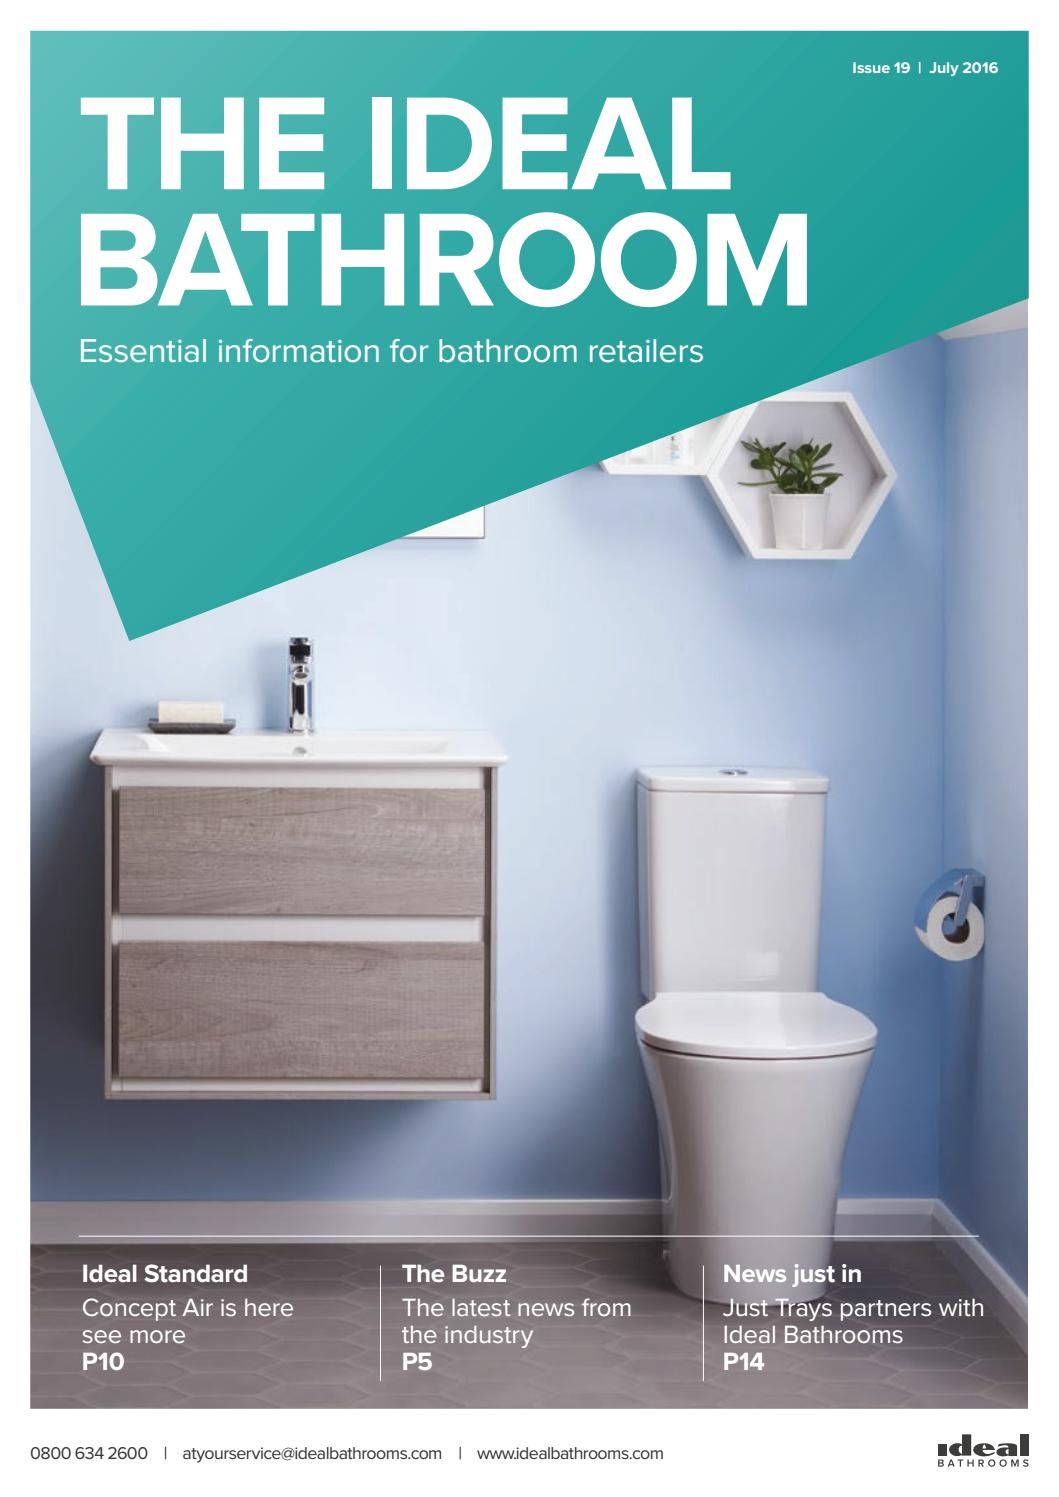 Ideal bathroom magazine 19 by Ideal Bathrooms - issuu